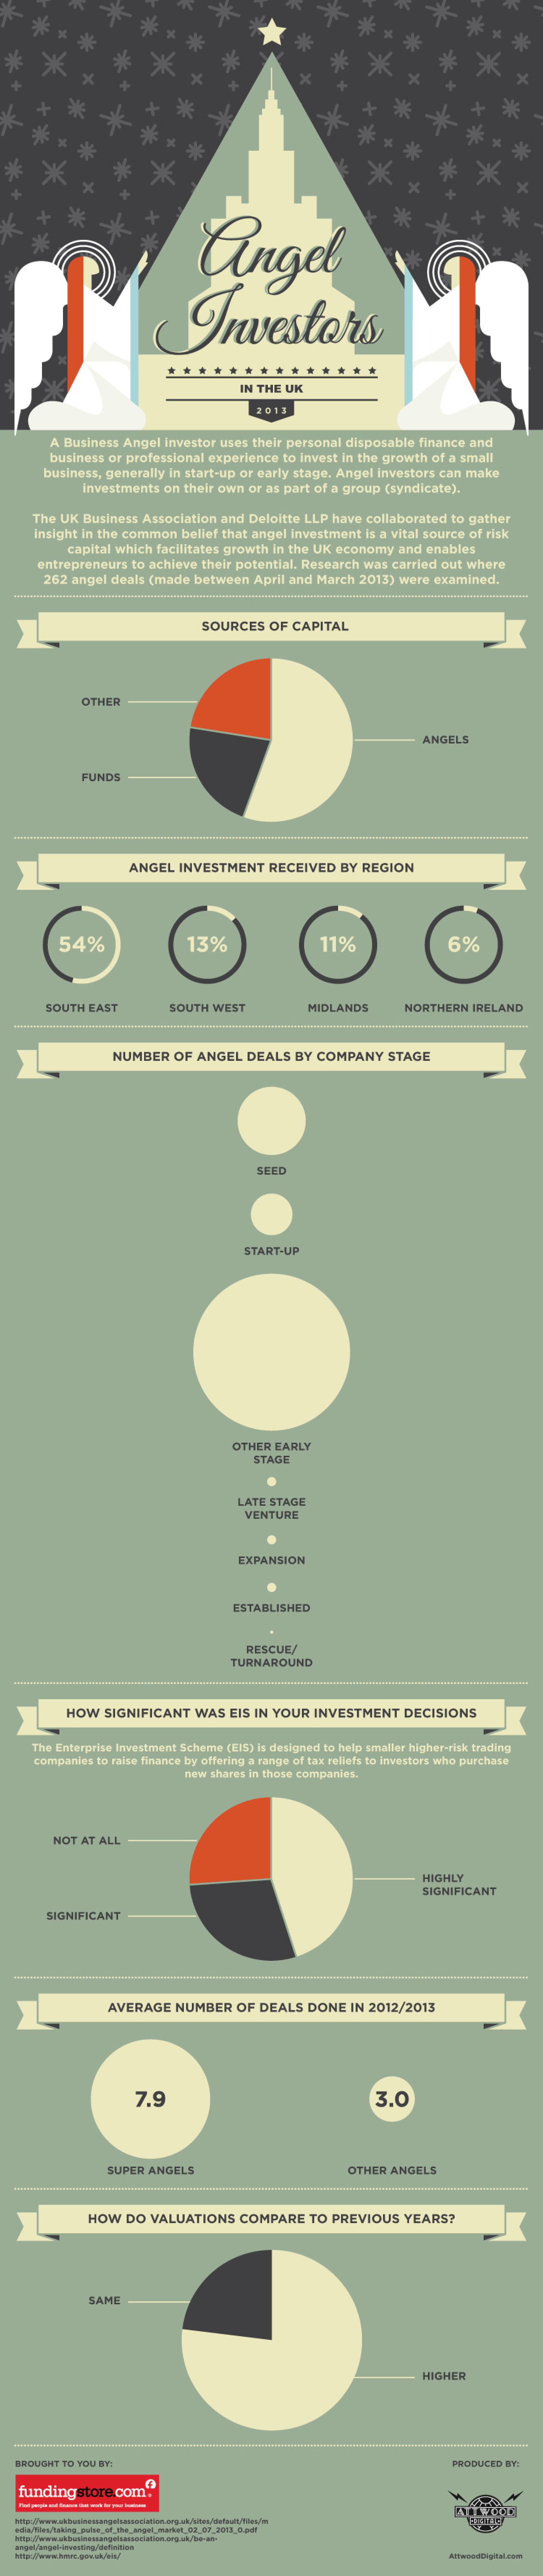 Angel Investors In The UK 2013 Infographic